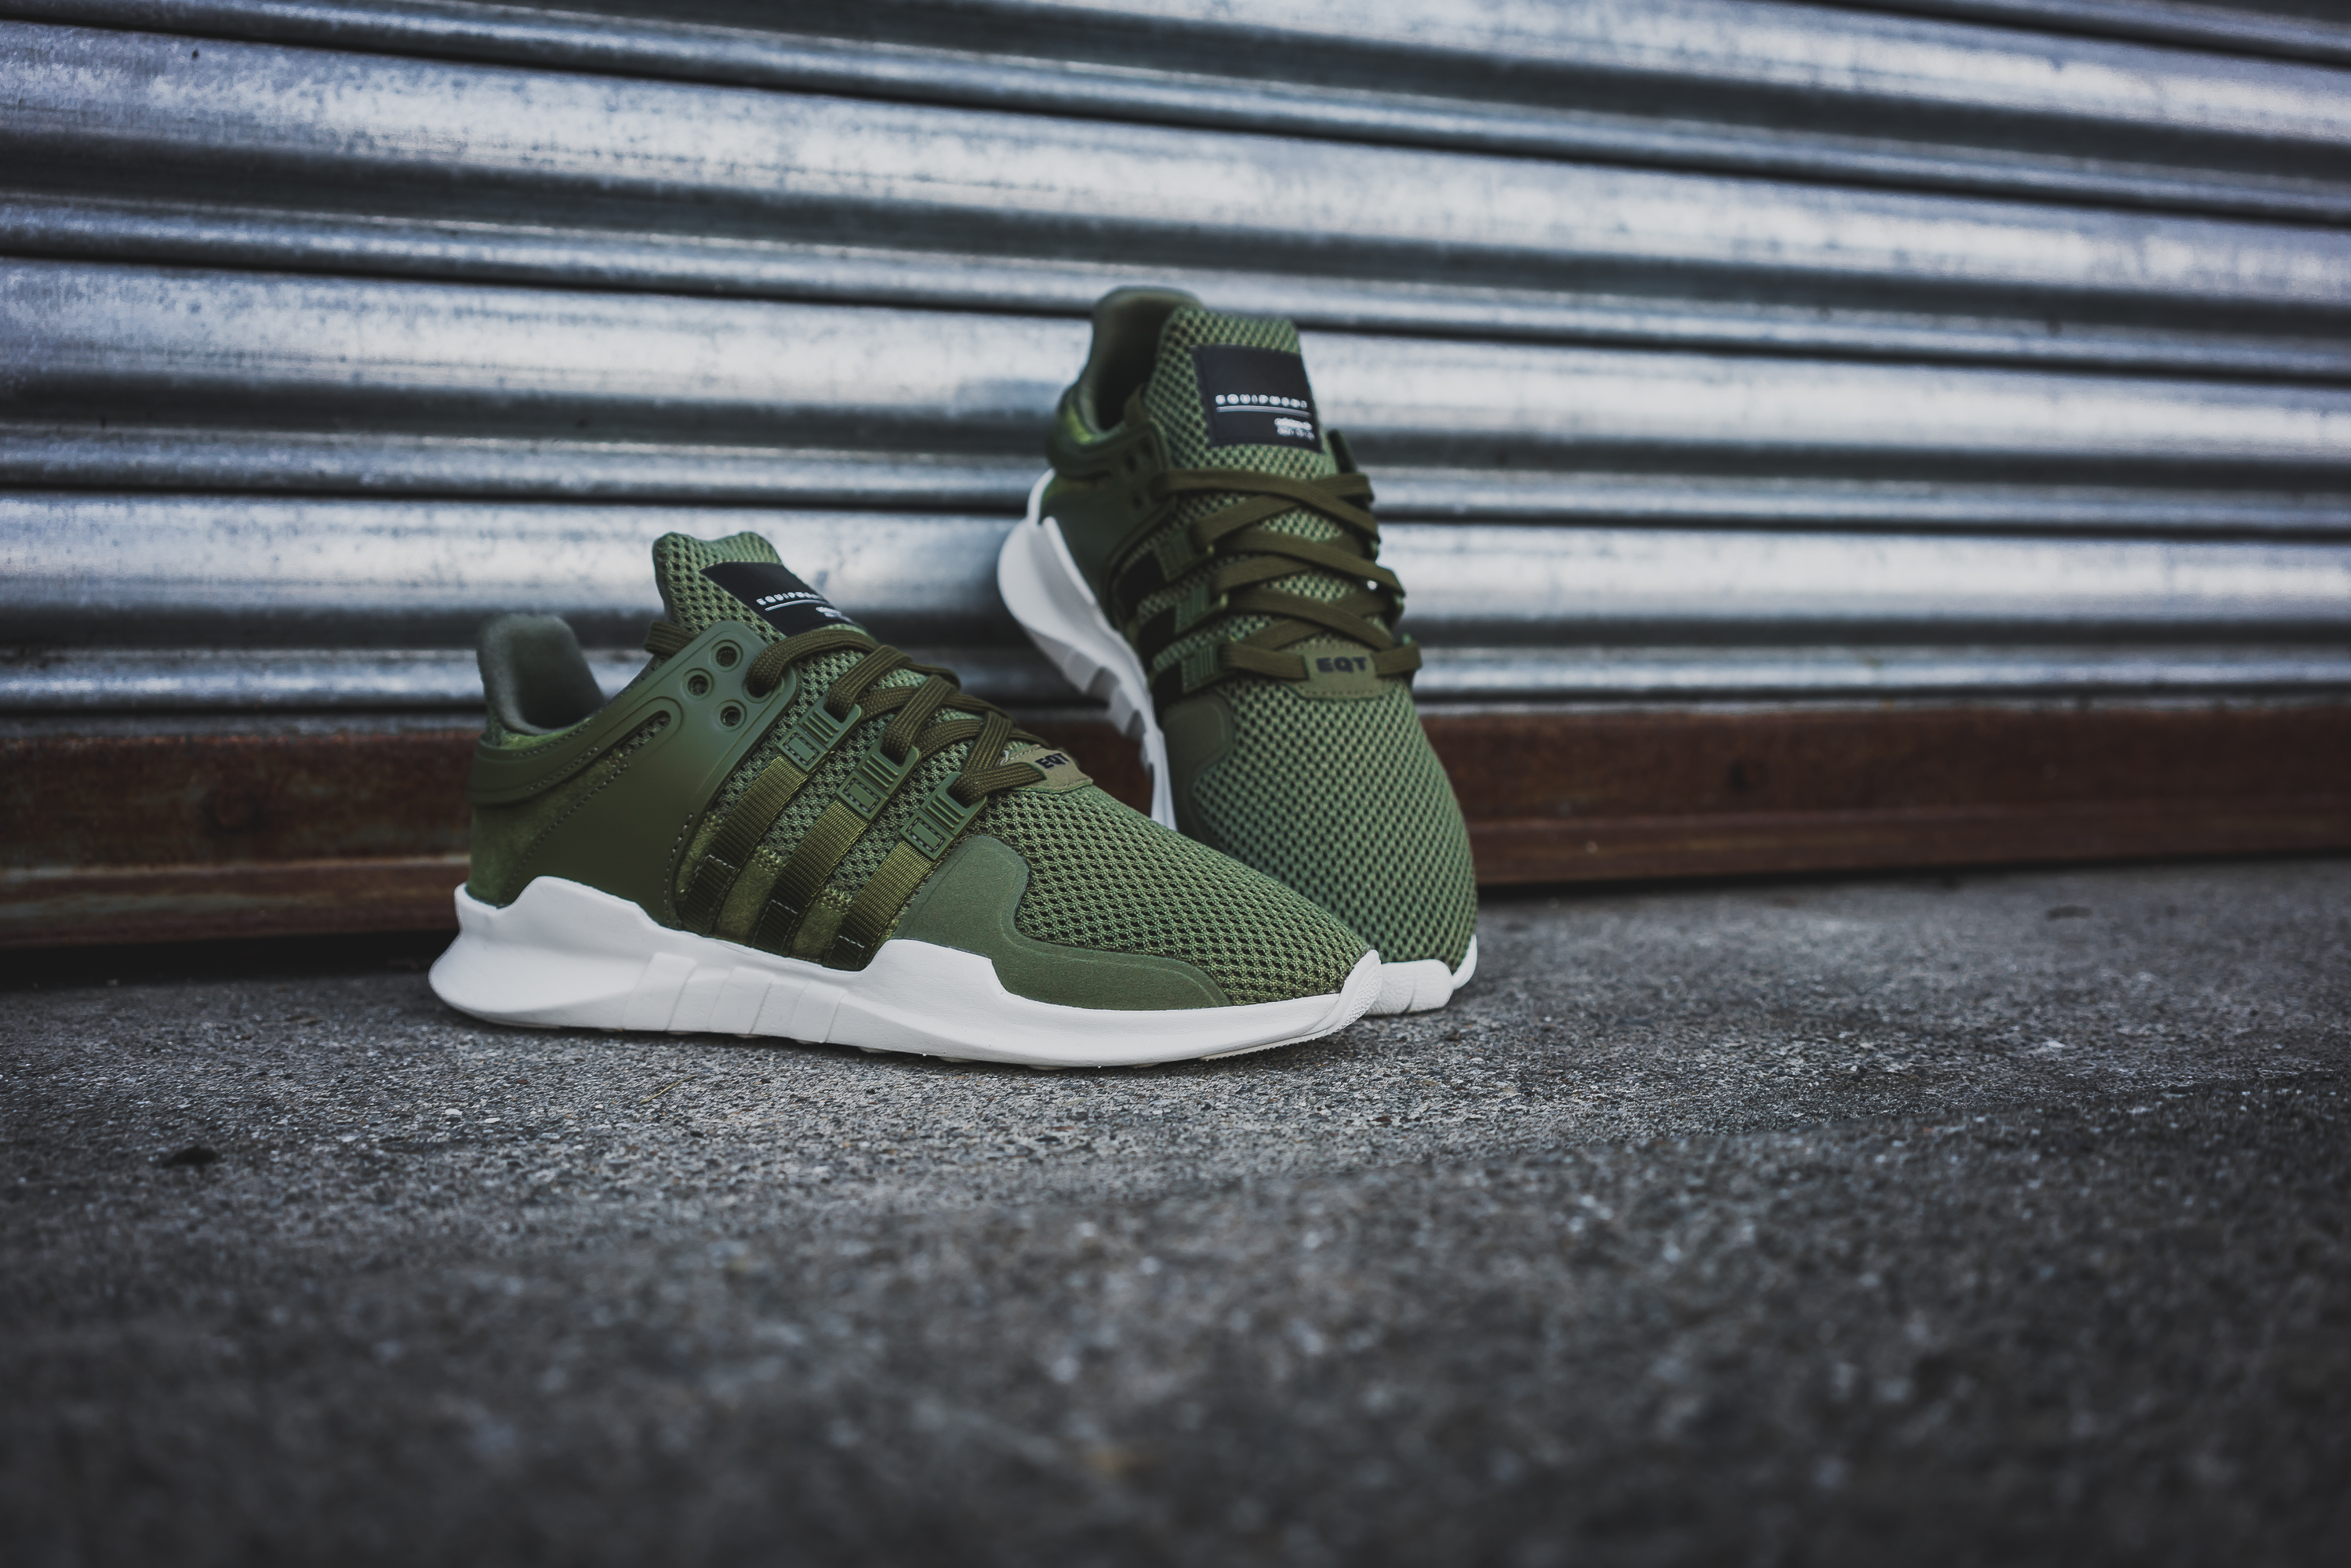 adidas equipment support adv schoenen olive